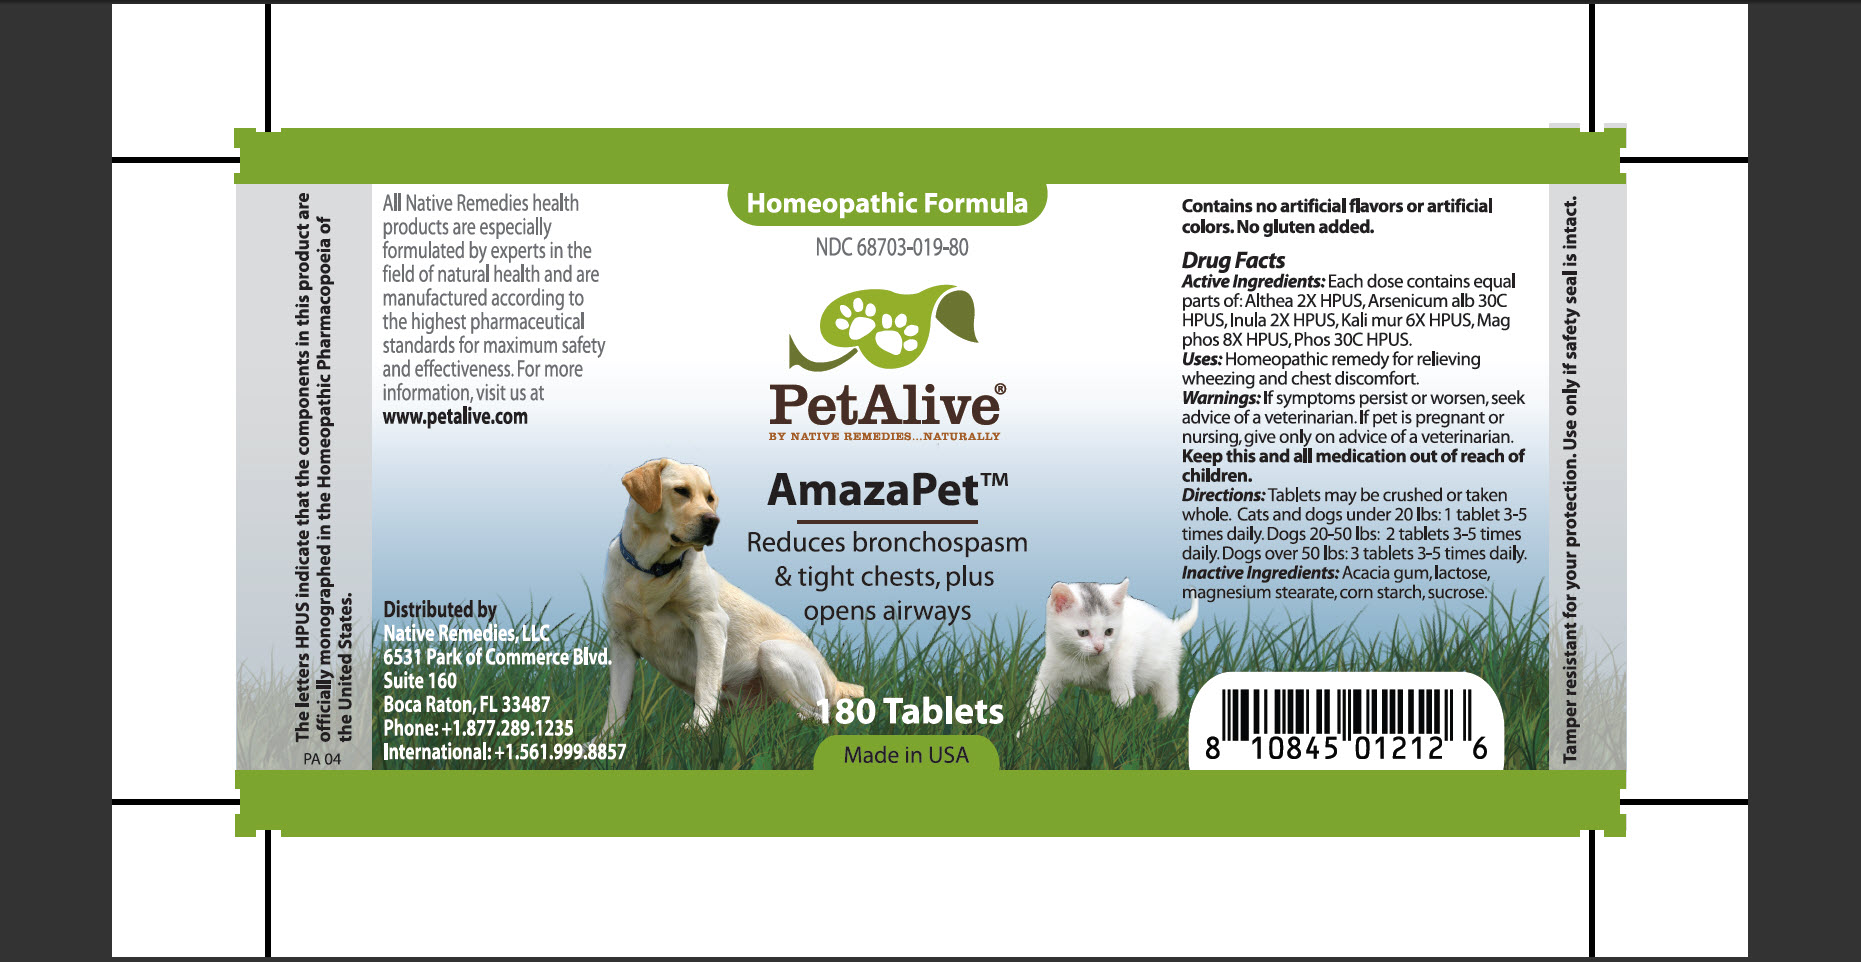 Amazapet (Althea, Arsenicum Alb, Inula, Kali Mur, Mag Phos, Phos) Tablet [Native Remedies, Llc]